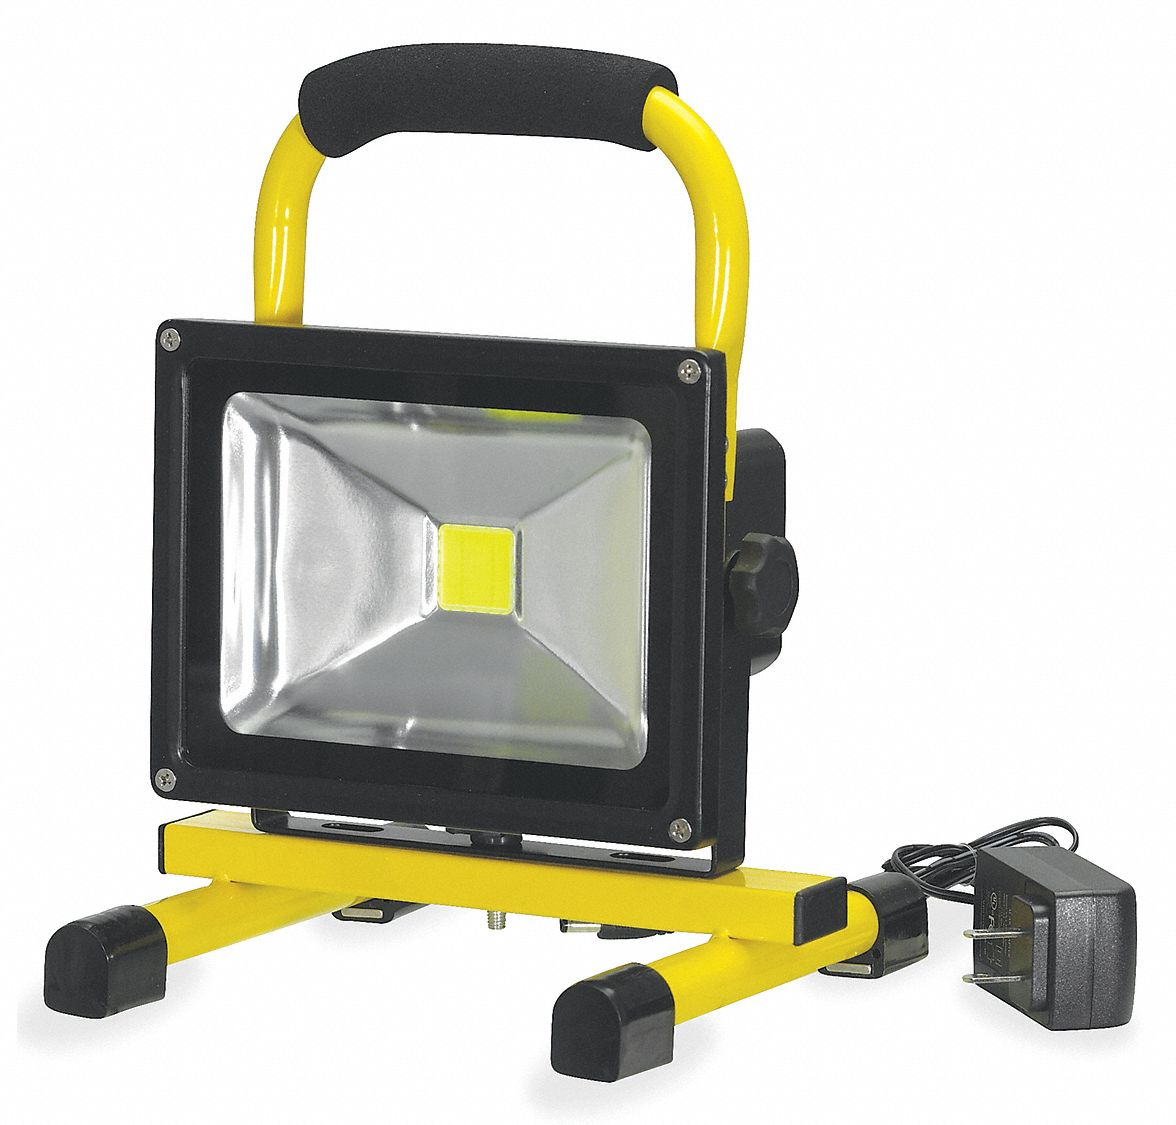 Prolight 20w Led Floor Stand Temporary Job Site Light